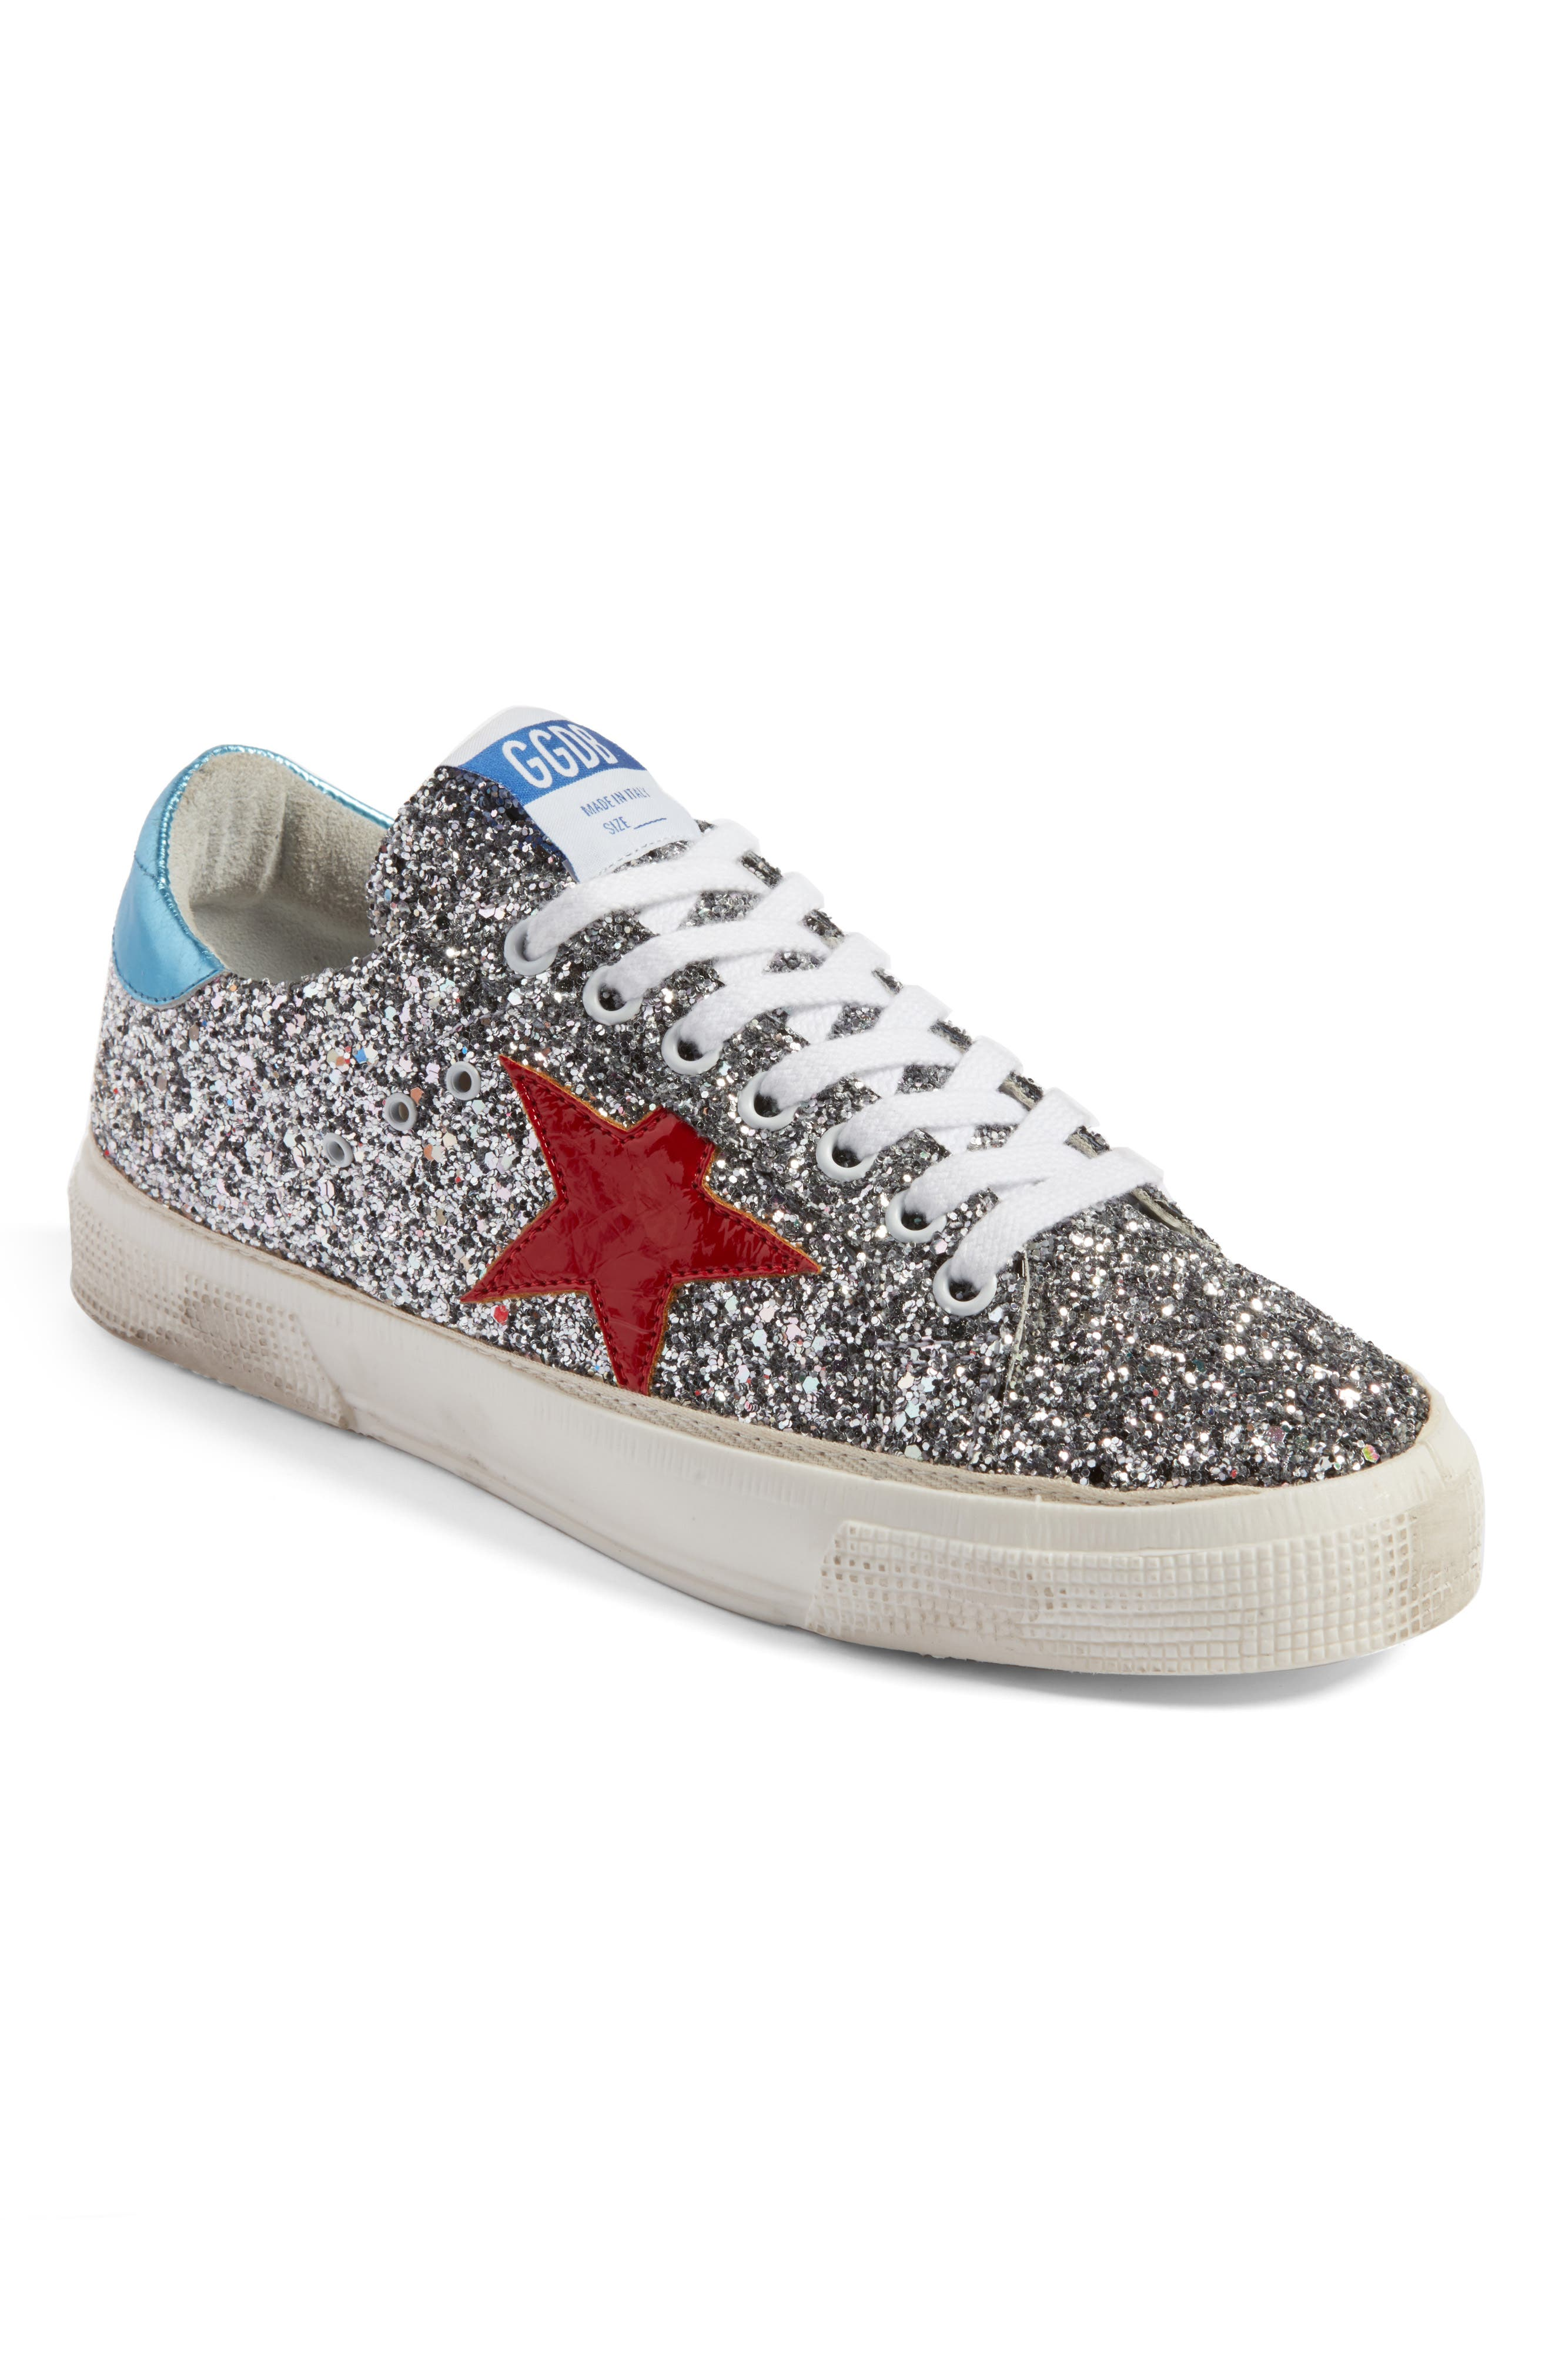 May Sneaker,                         Main,                         color, Silver Glitter/ Red